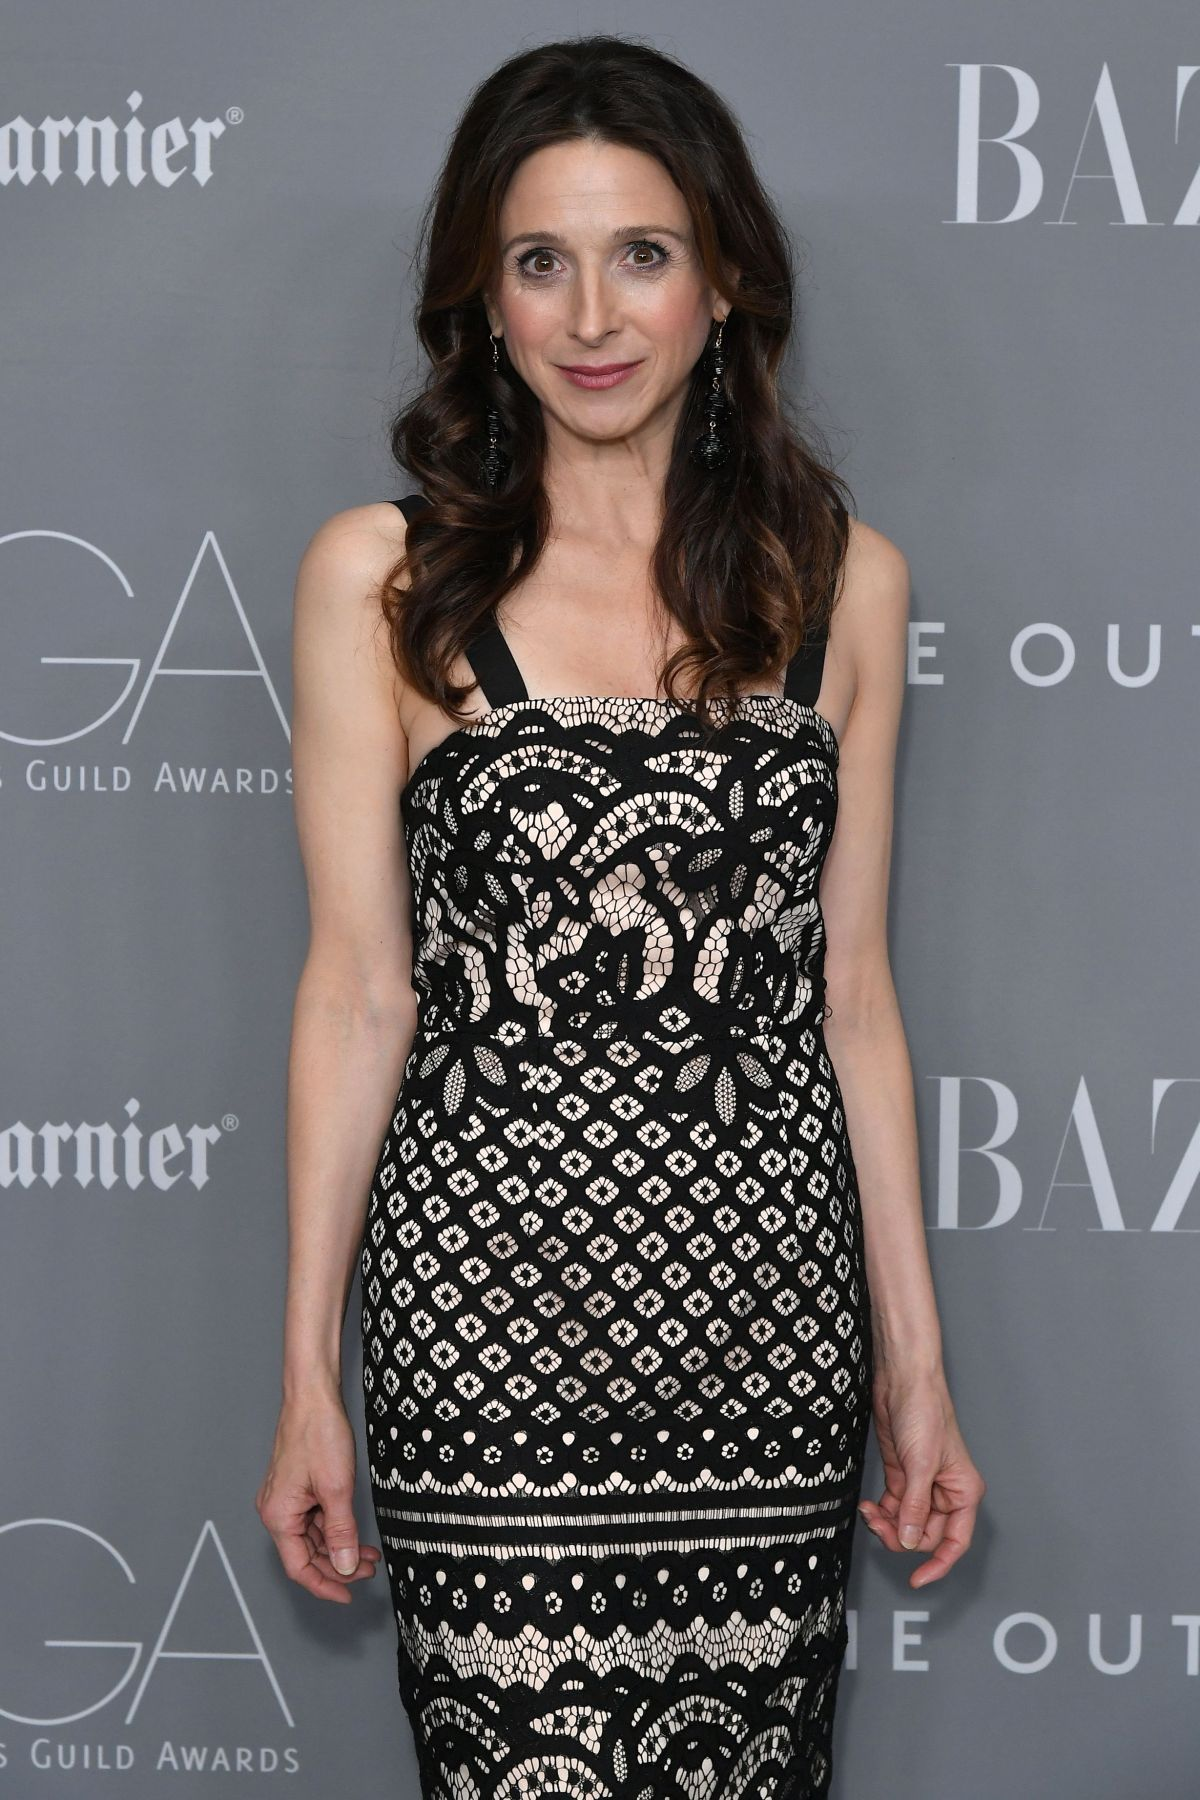 Marin Hinkle At 20th Annual Costume Designers Guild Awards, Los Angeles - Celebzz - Celebzz